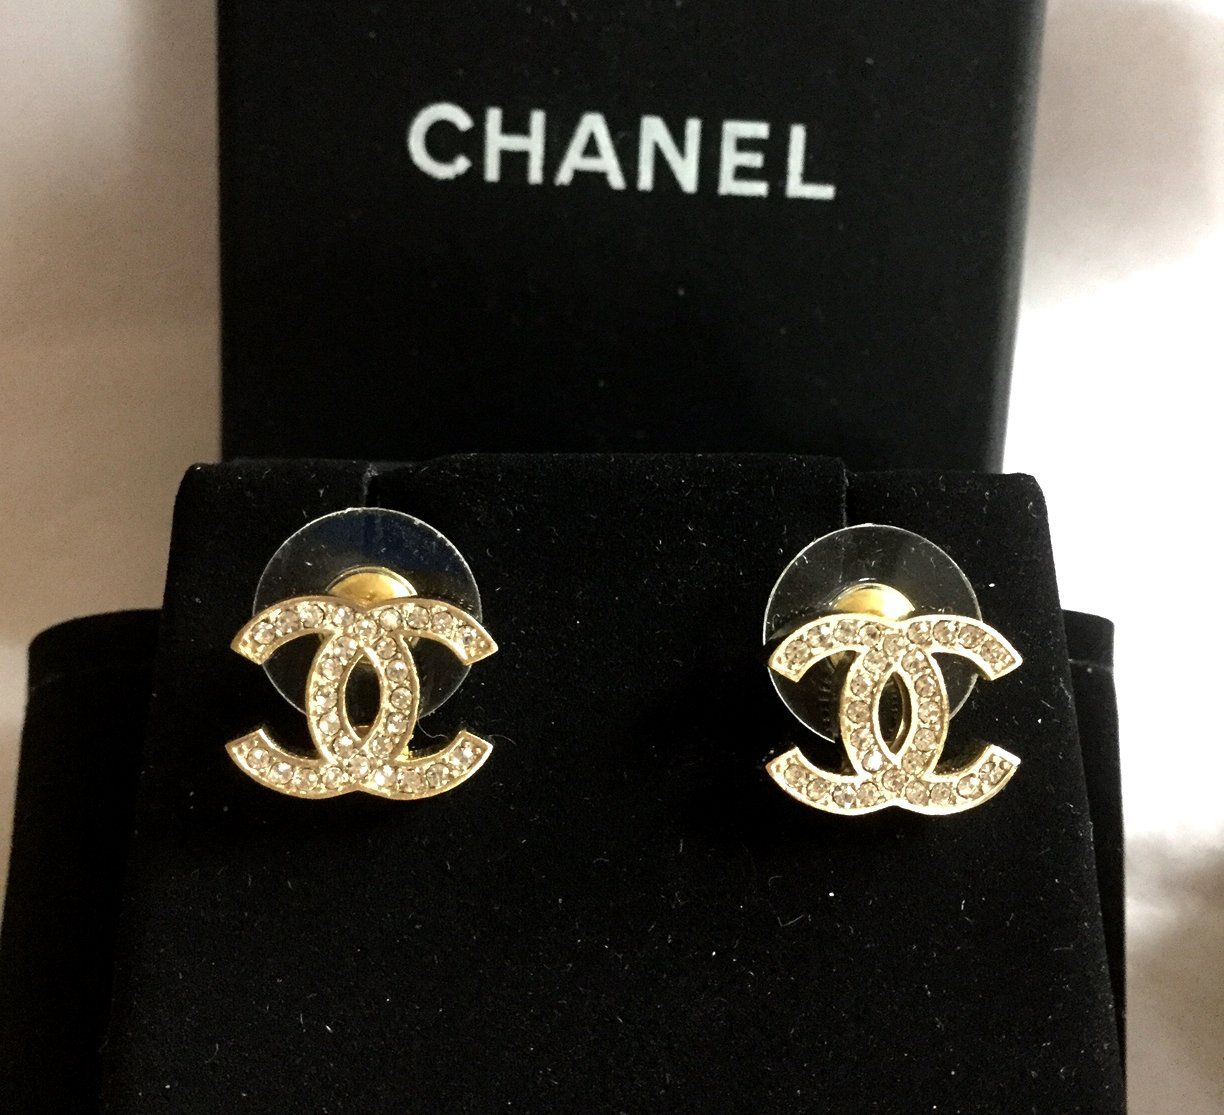 1f0e3f6be CHANEL+Classic+Mini+CC+Crystal+Stud+Gold+Earrings+Hallmark+Authentic+NIB